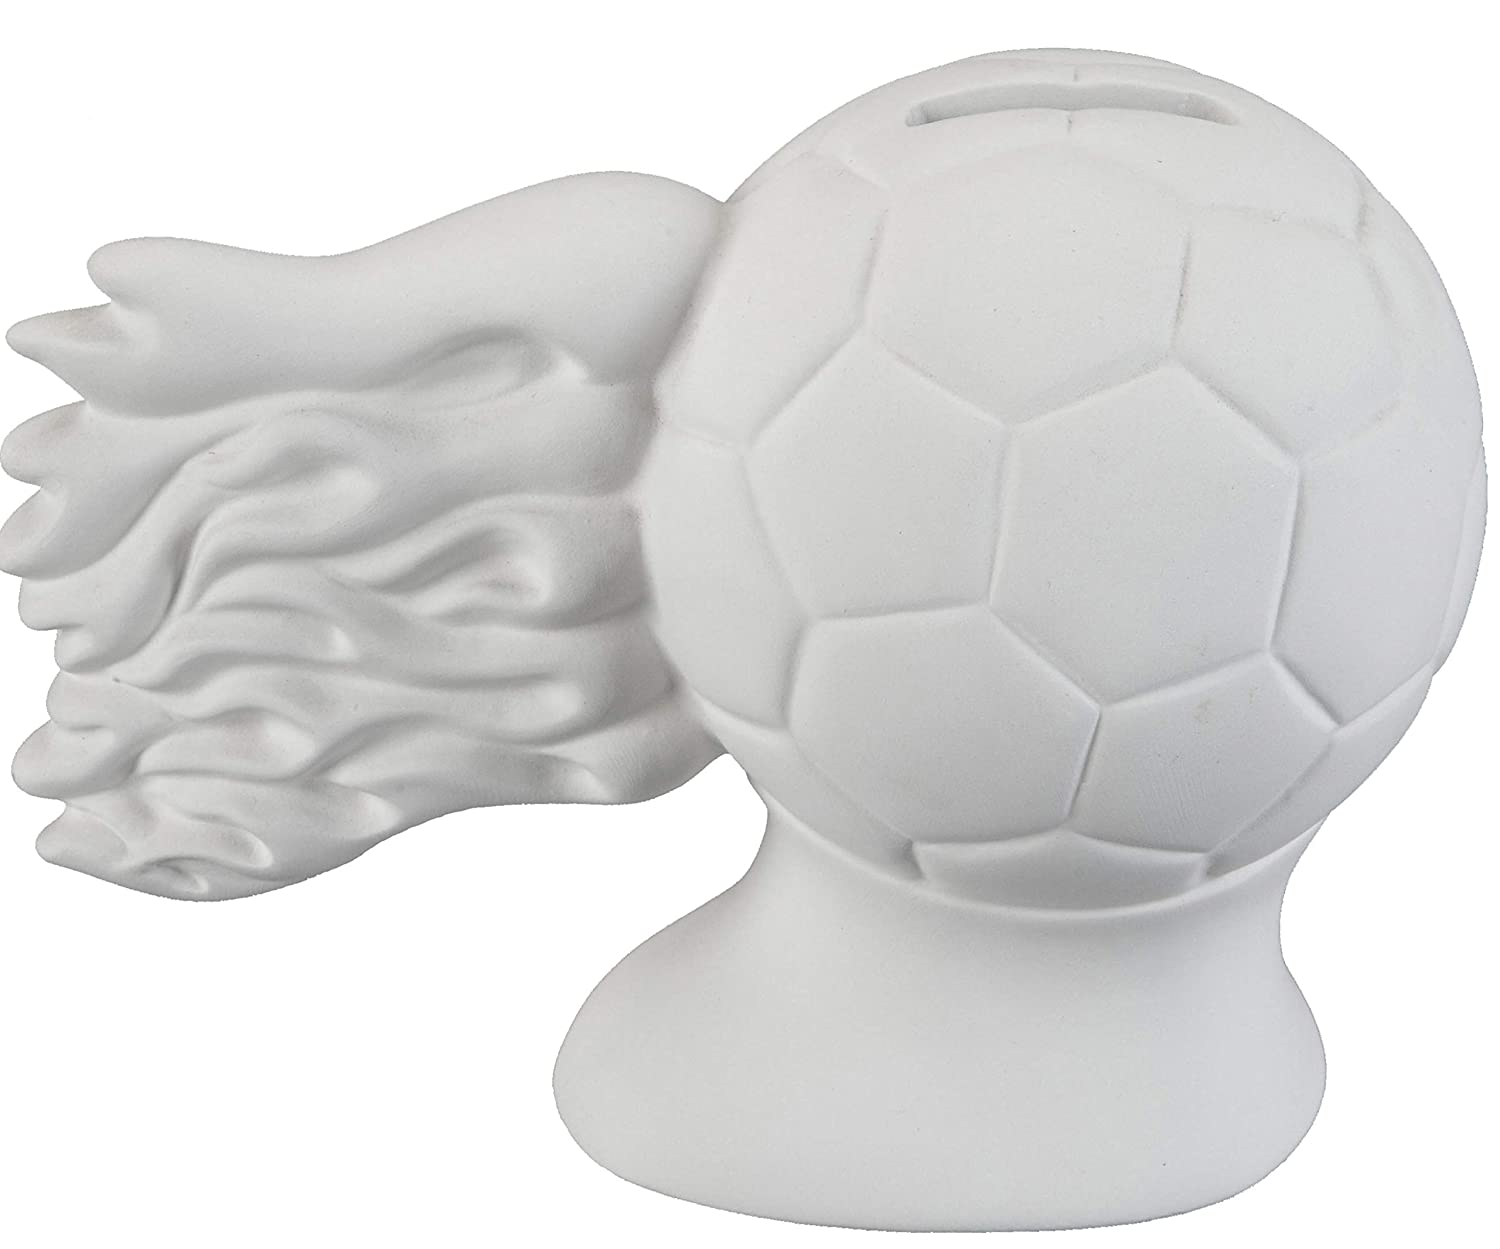 Unfinished Ceramic Bisque Creative Hobbies Hot Shot Soccer Ball Bank with How to Paint Your Own Pottery Booklet Case of 6